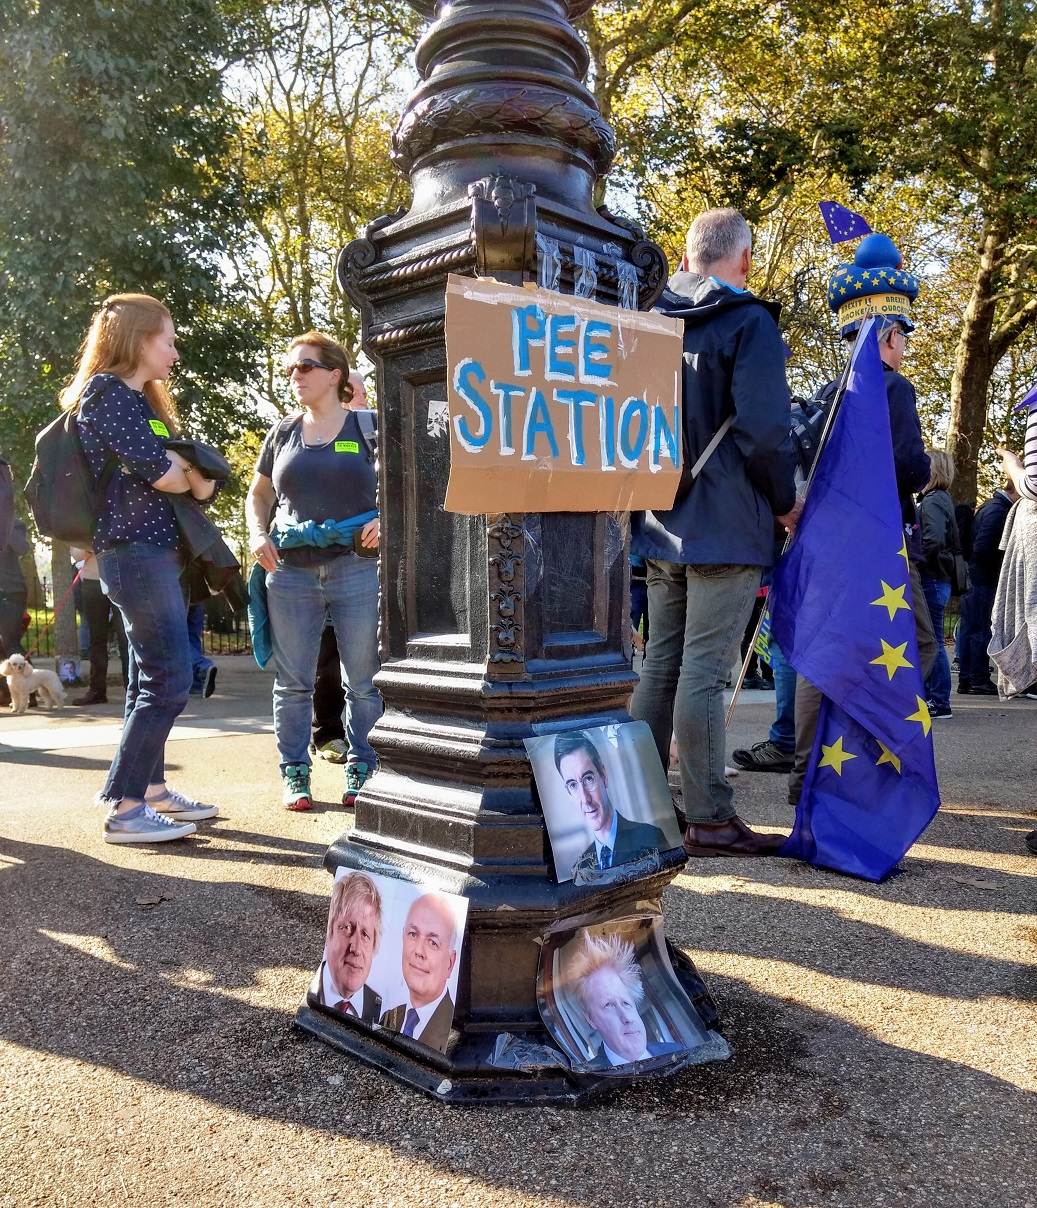 peoples vote march pee station